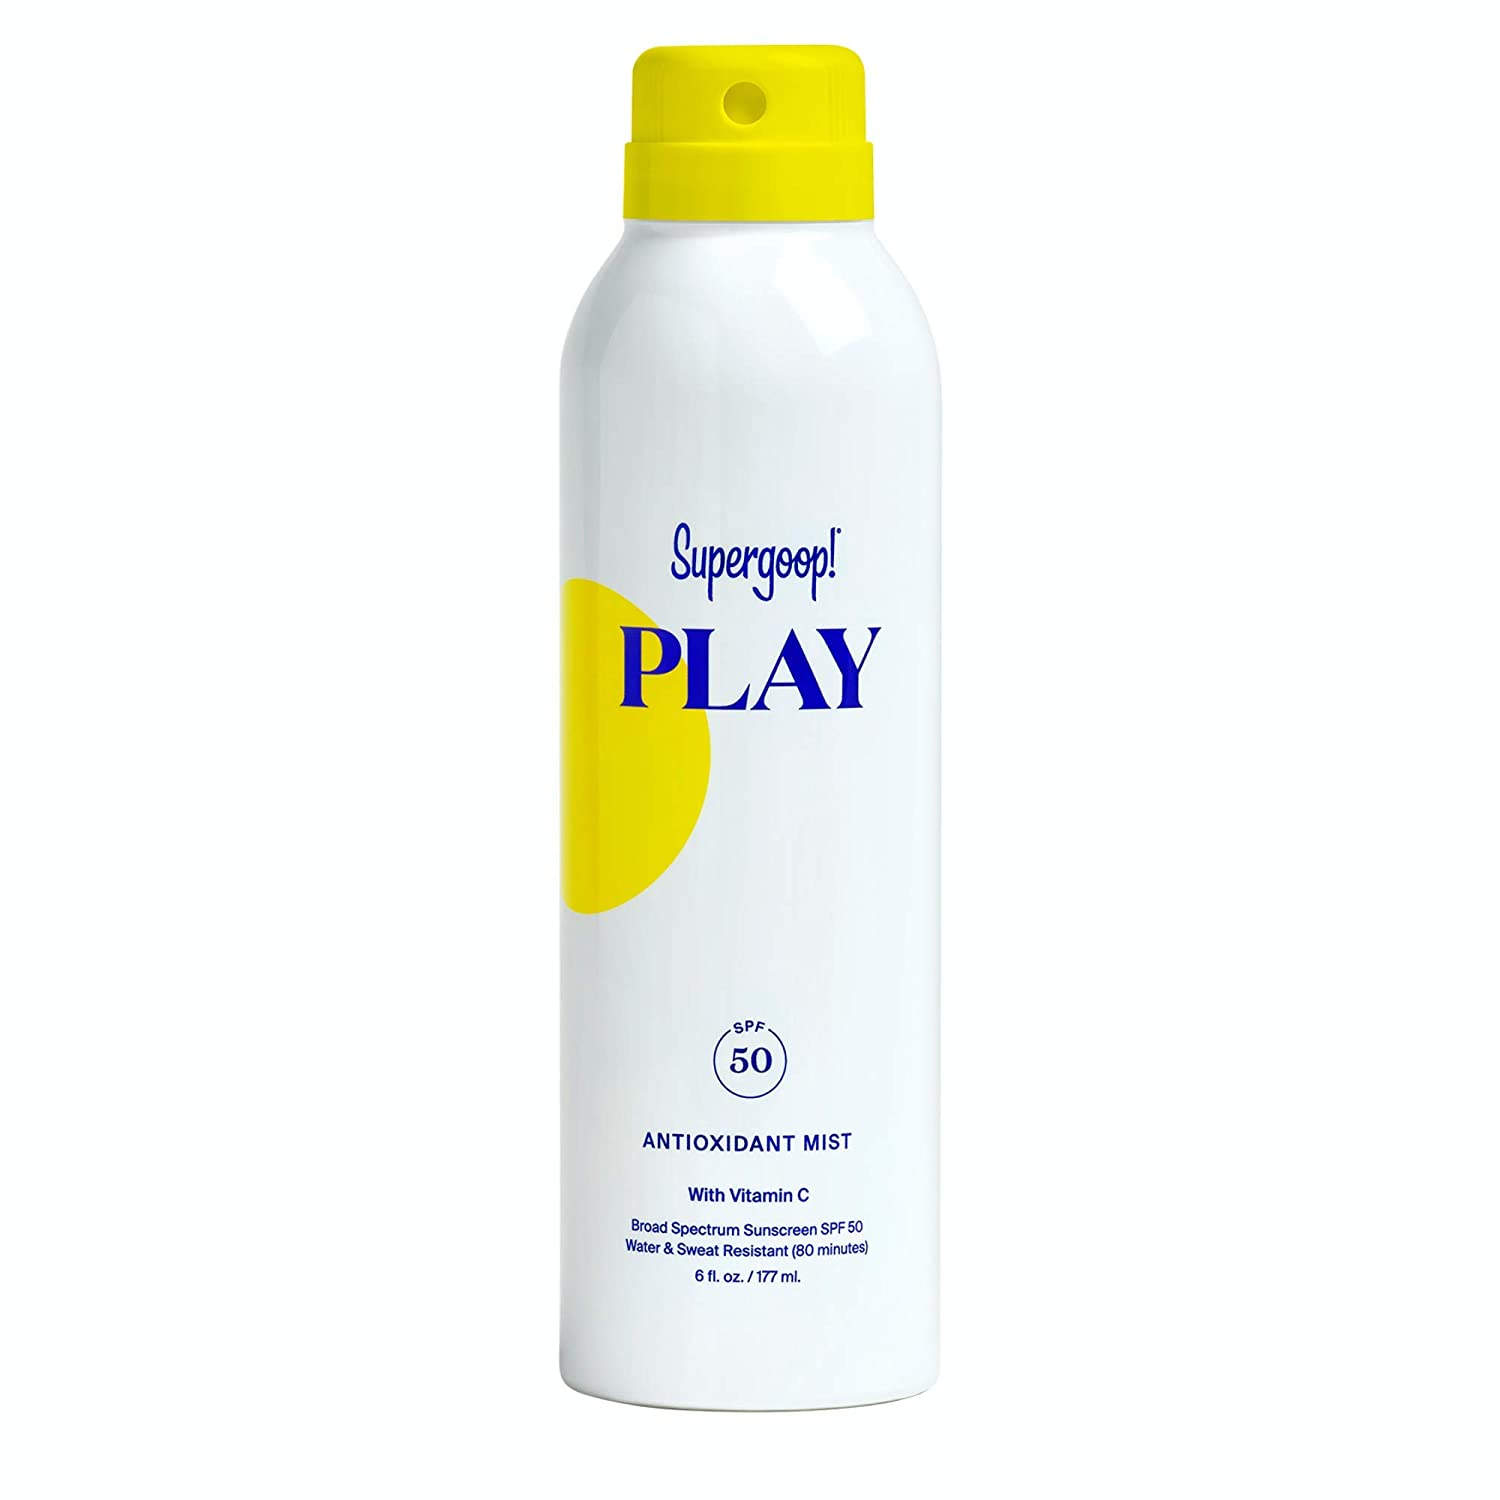 Supergoop! PLAY SPF 50 Antioxidant-Infused Body Mist w/Vitamin C, 6 fl oz - Reef-Safe, Broad Spectrum Sunscreen Spray - Body Sunscreen for Sensitive Skin - Clean ingredients - Great for Active Days